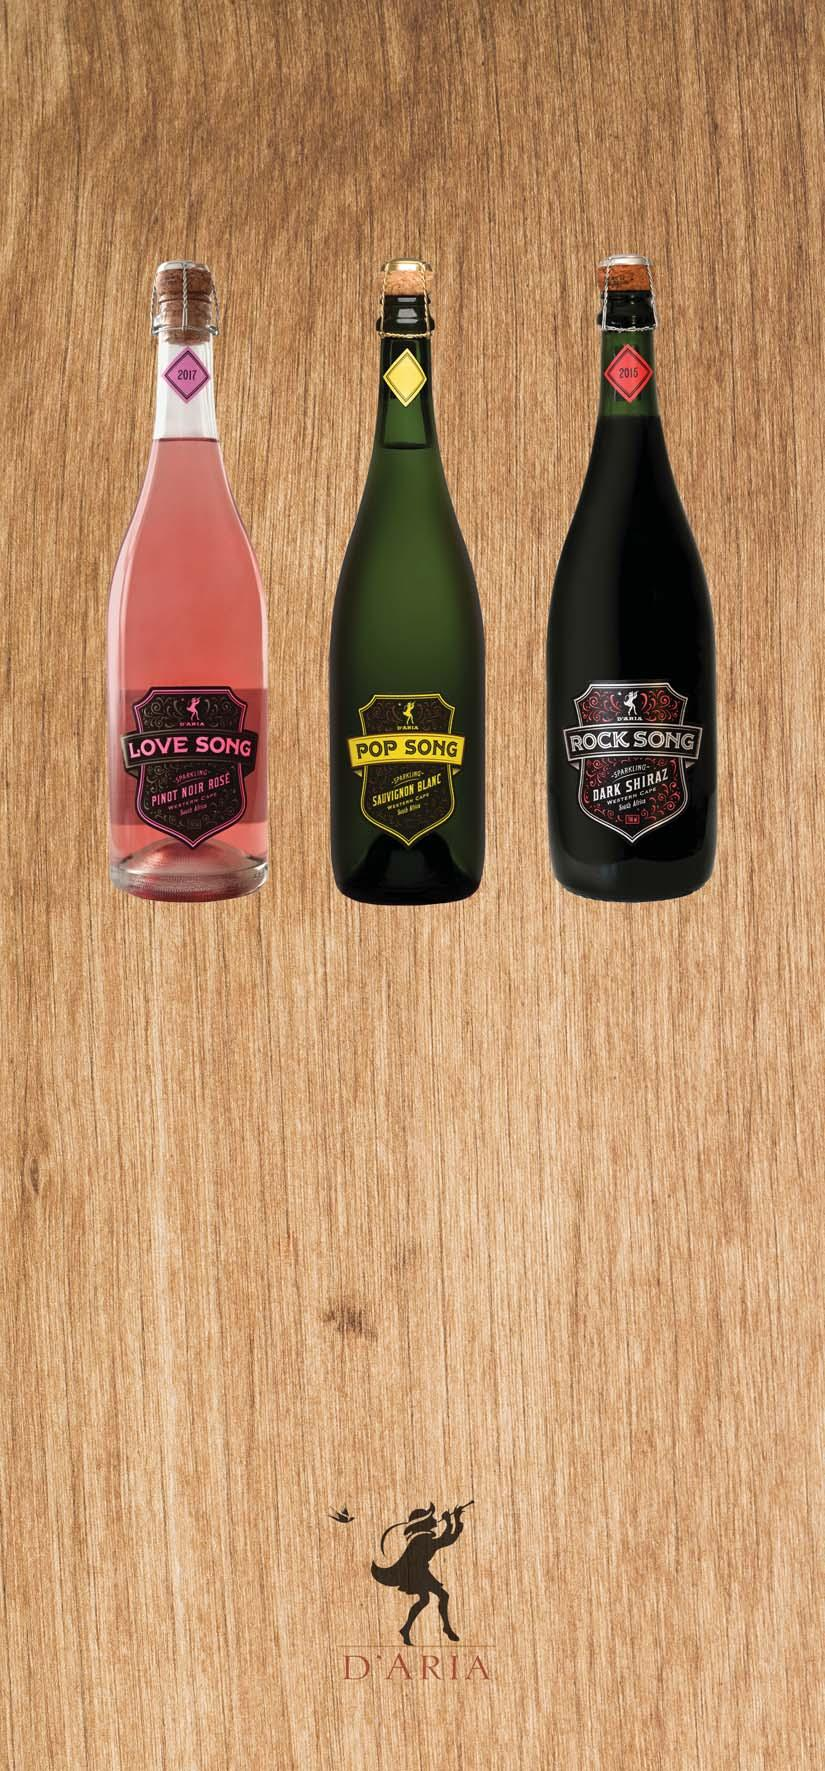 SPARKLING WINES by D ARIA D ARIA LOVE SONG PINOT NOIR SPARKLING 120 A Fresh and fragrant salmon coloured Pinot Noir Sparkling rose wine.